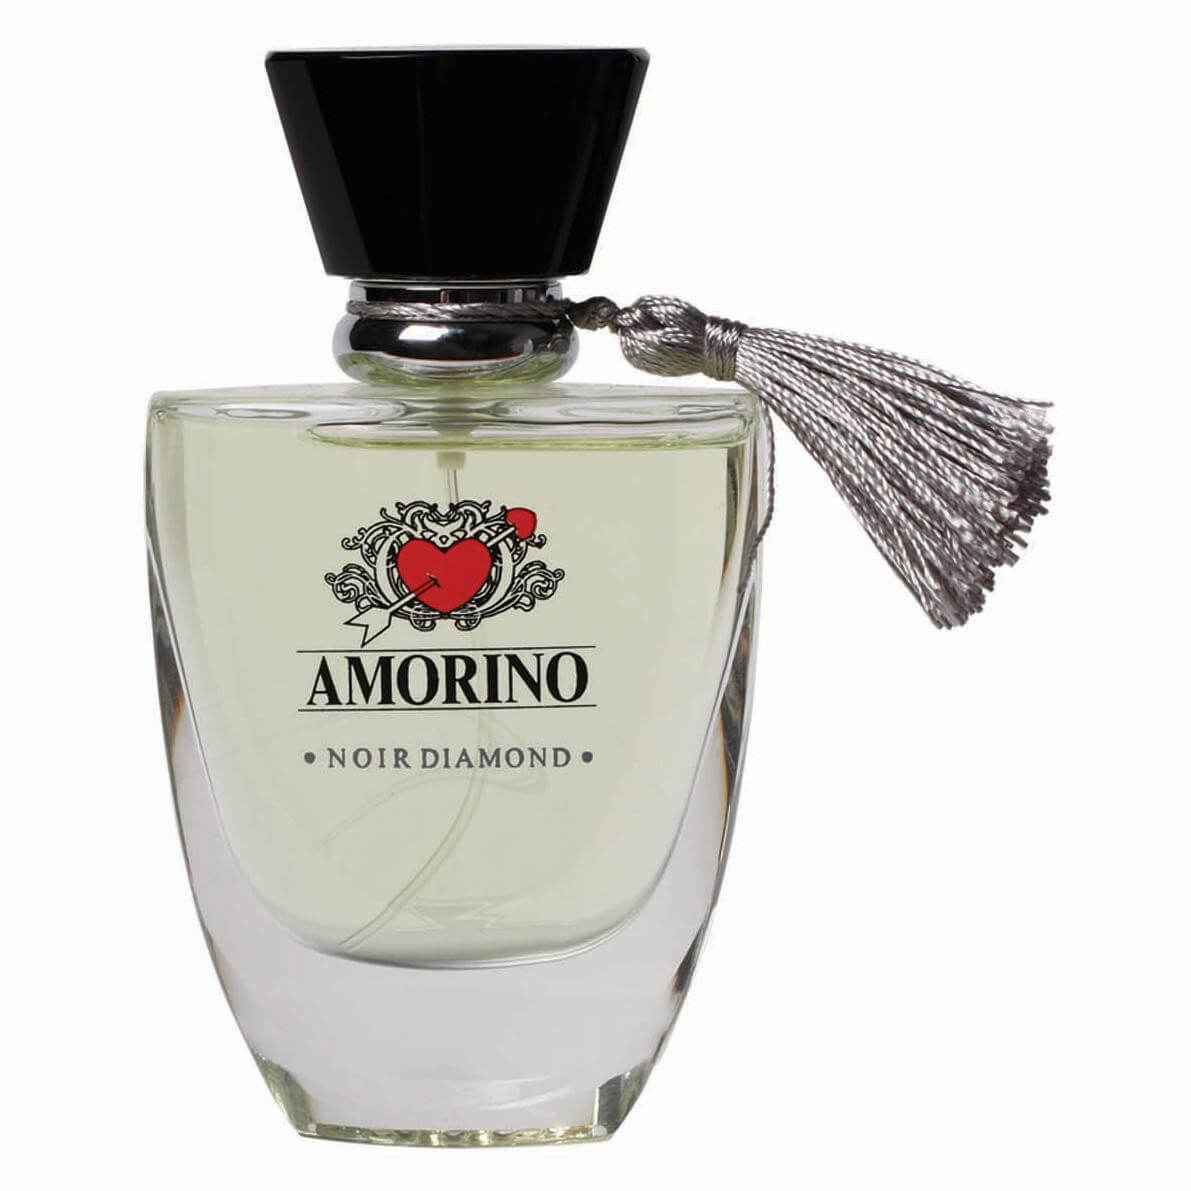 AMORINO Noir Diamond EDP 50ml (Unisex)